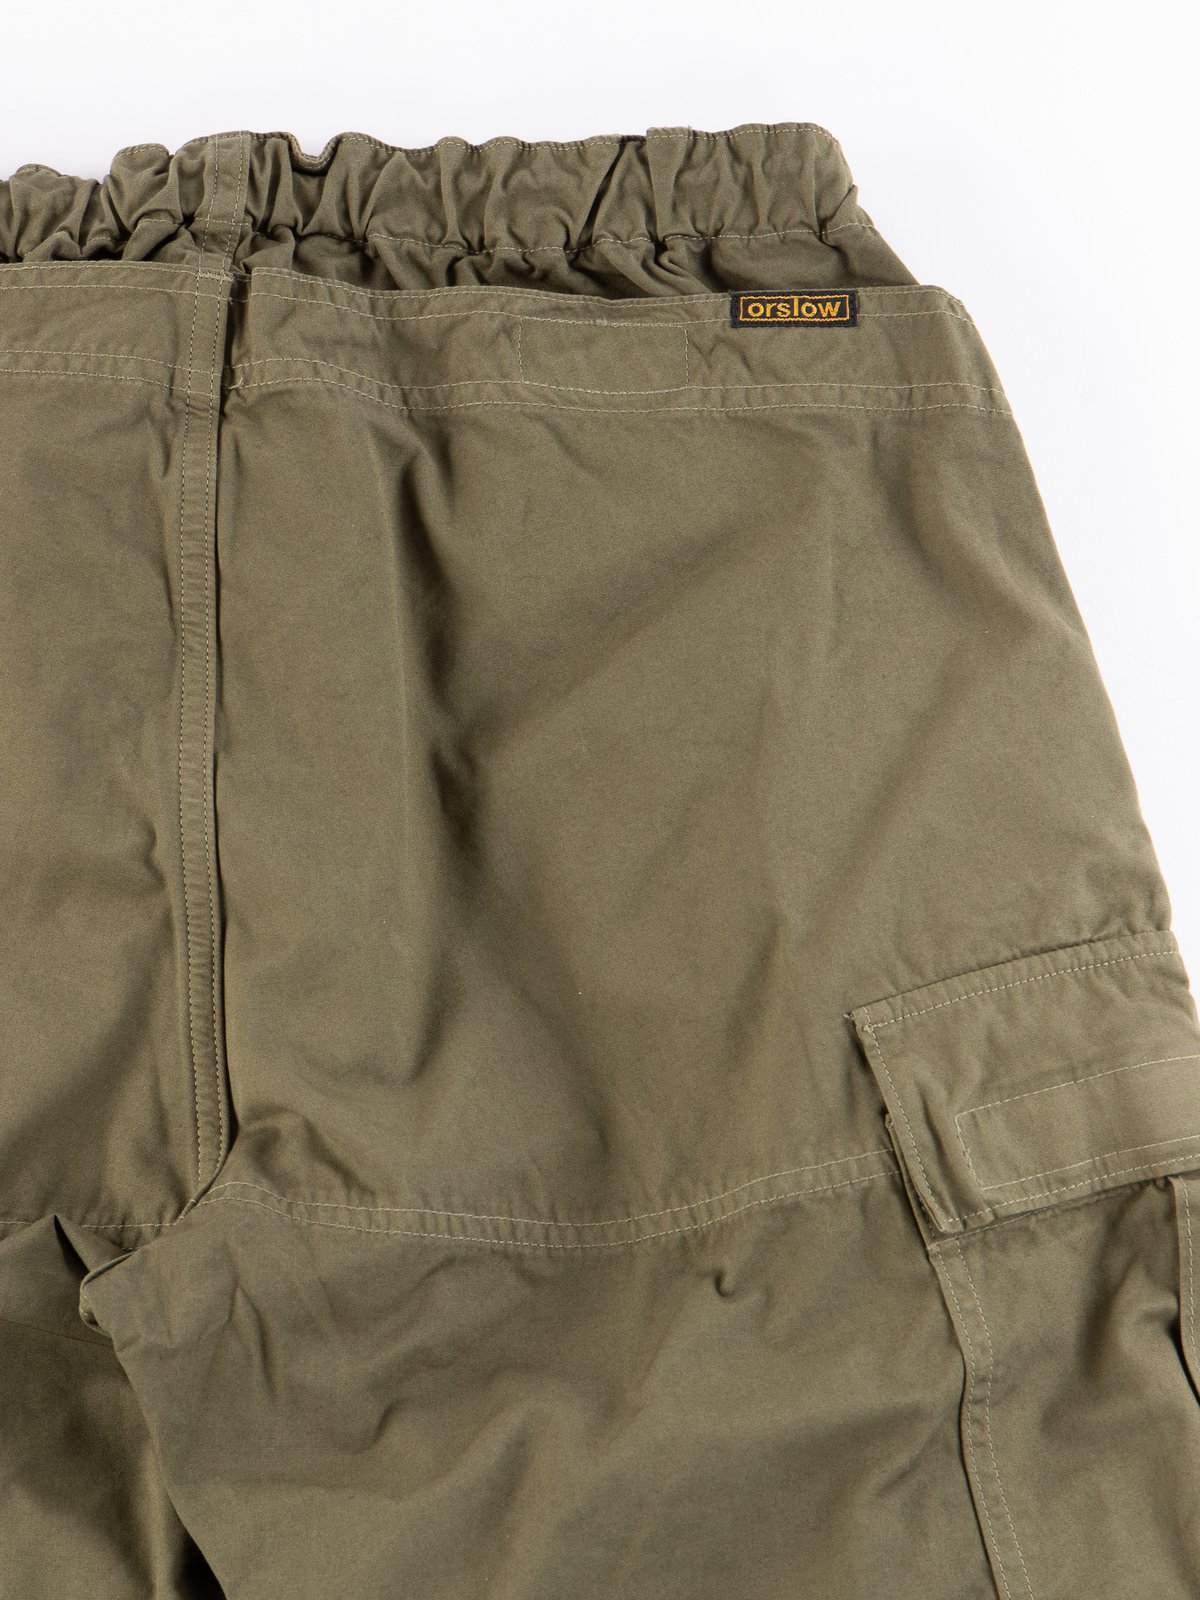 Army Weather Cloth Easy Cargo Pant - Image 8